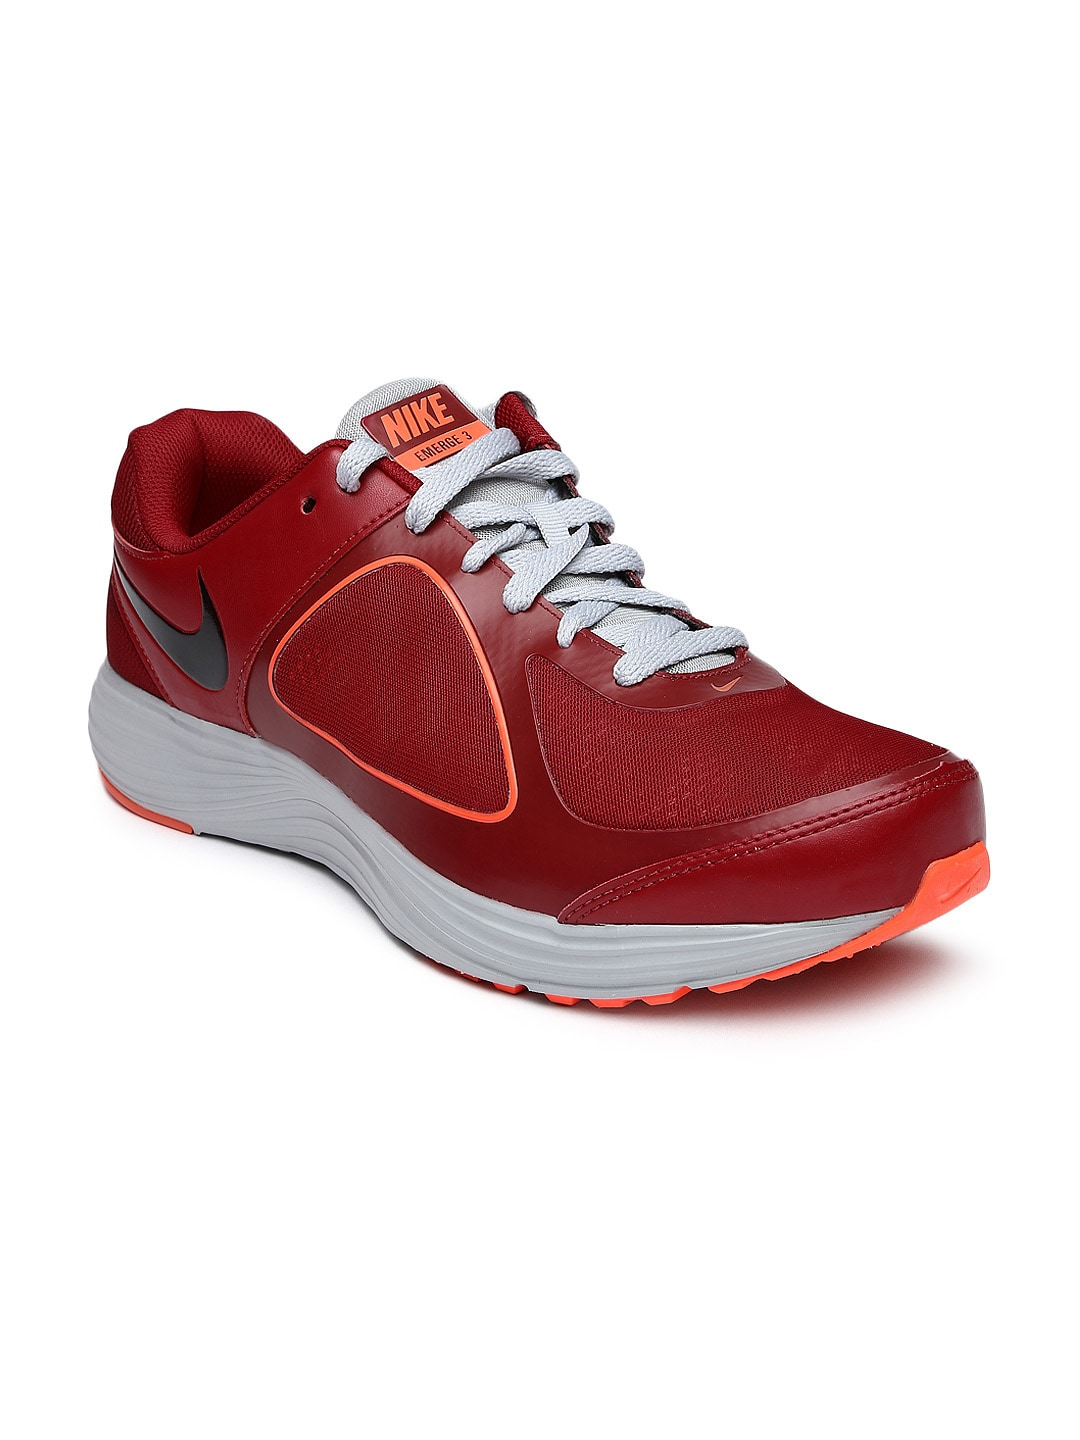 Nike 704656-600 Men Red Emerge 3 Running Shoes - Best Price in ... 3363e0e7fe